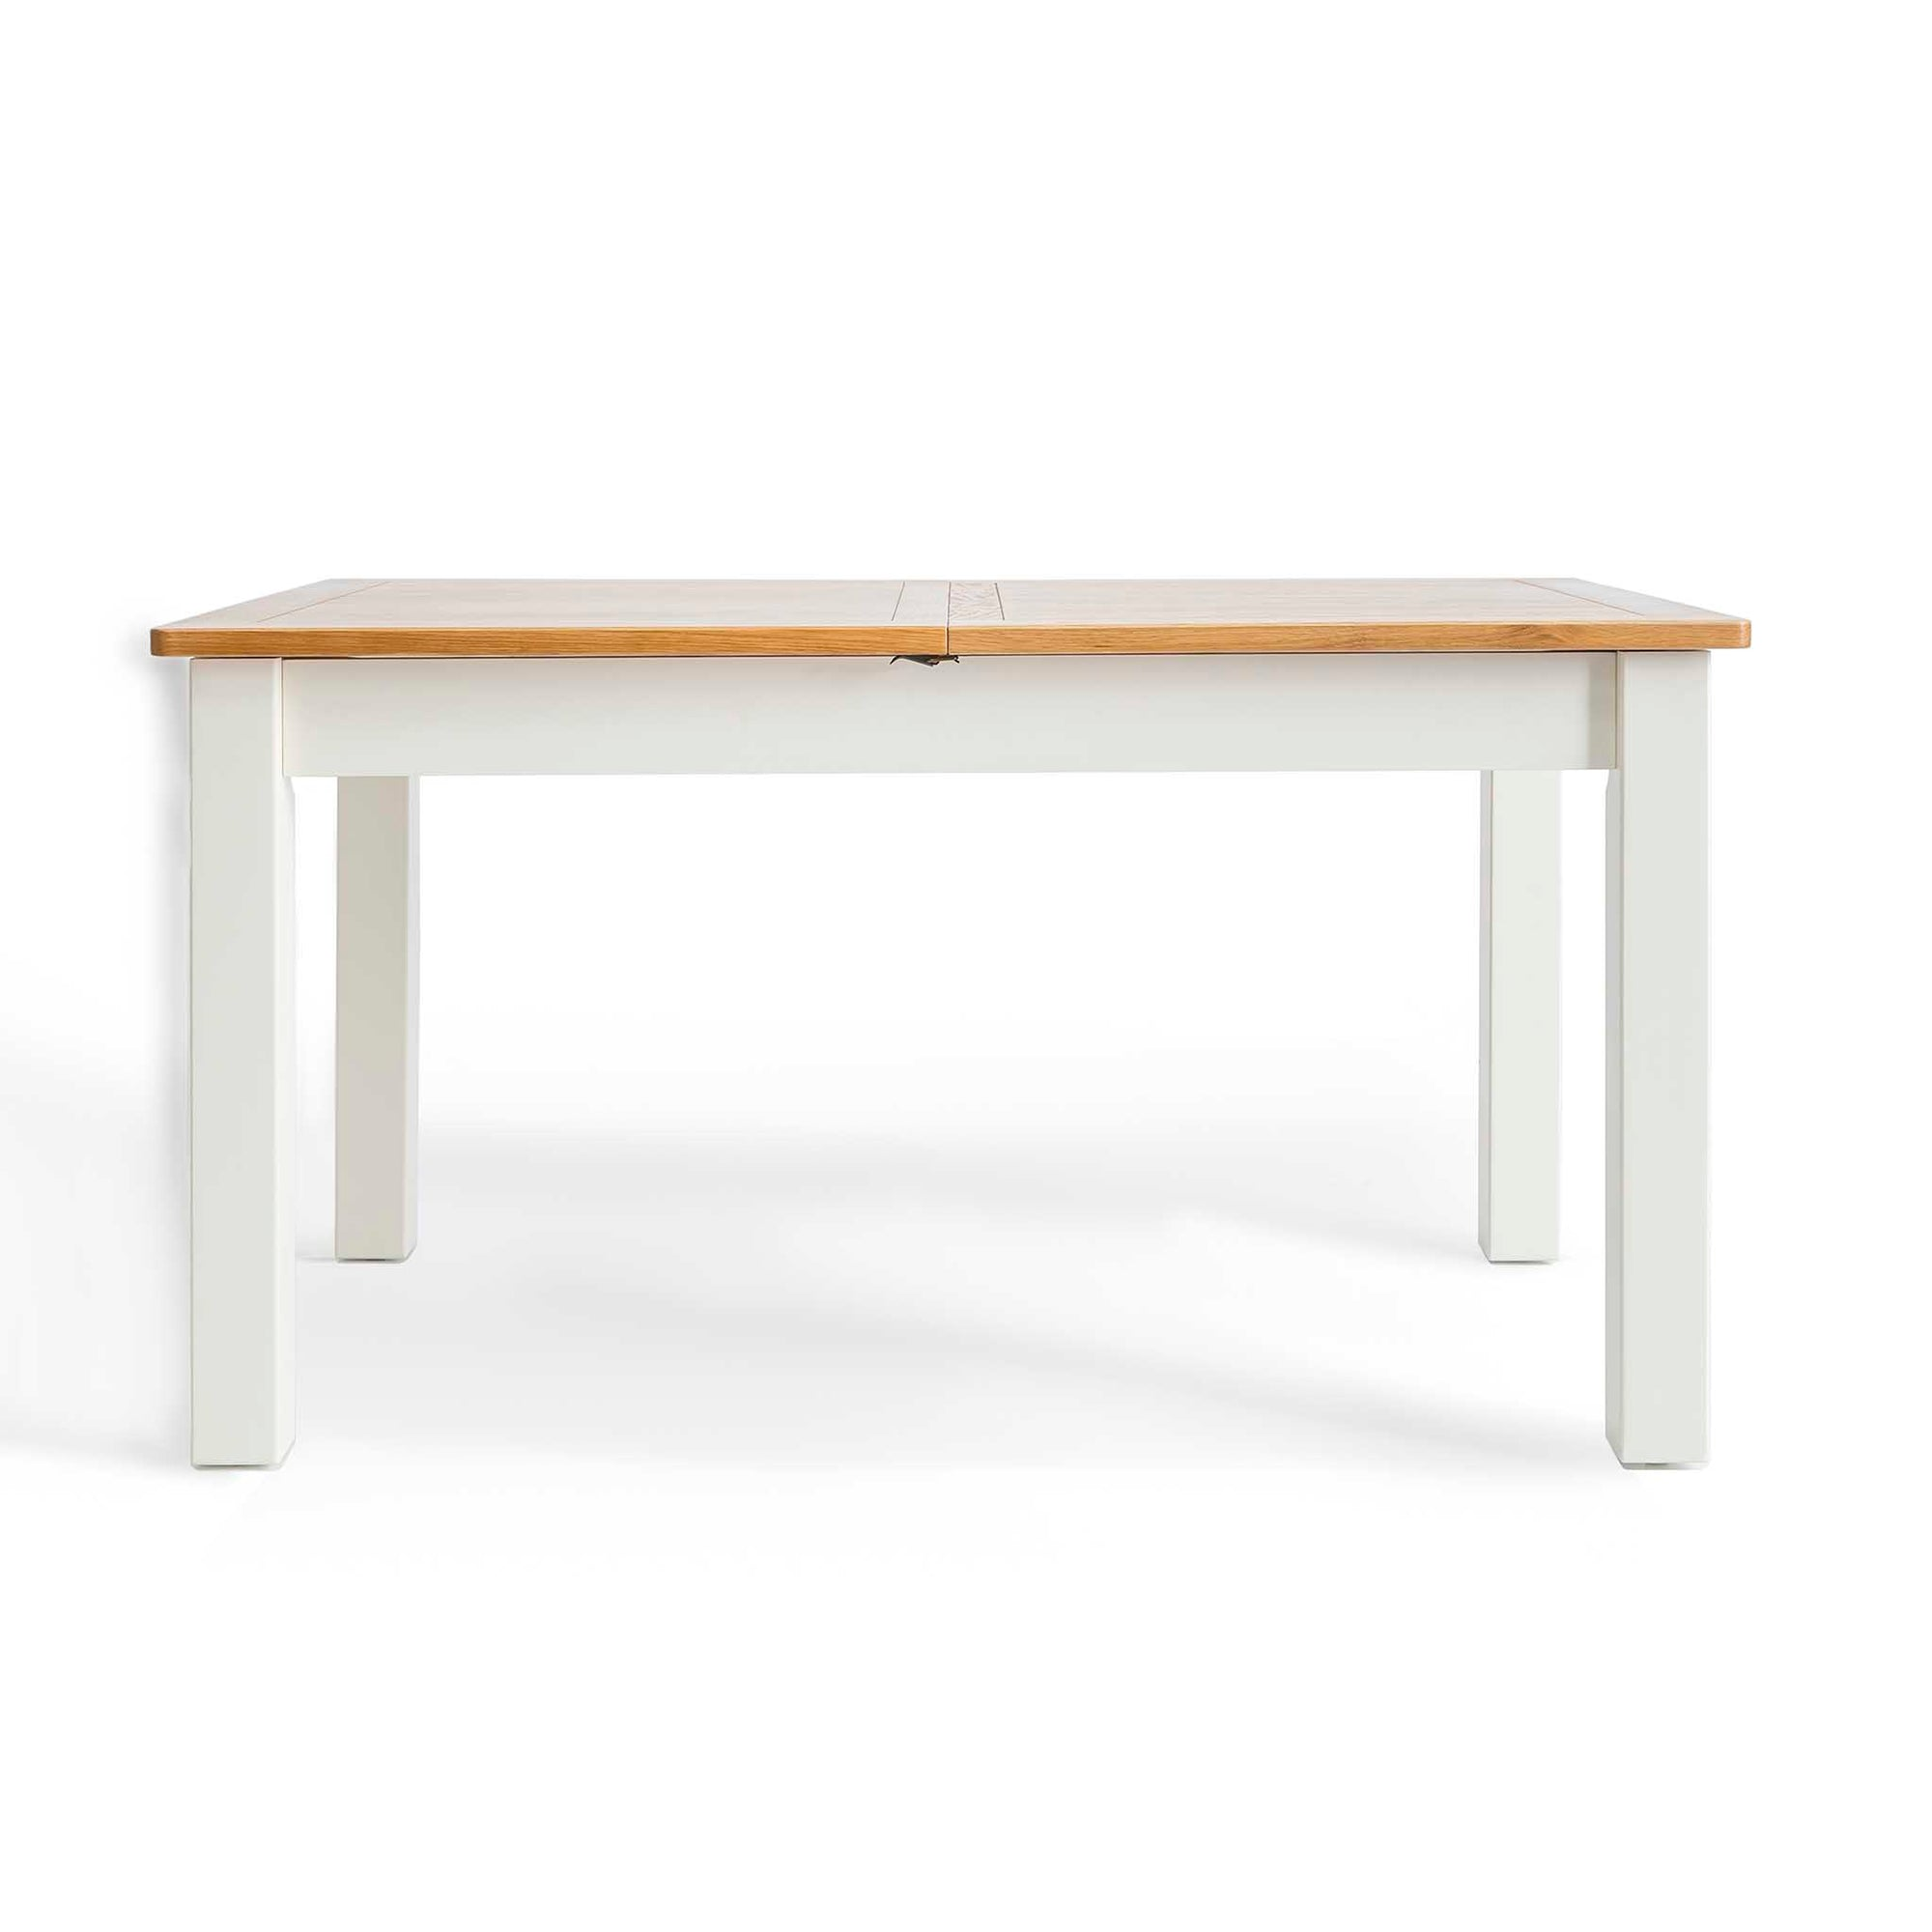 Padstow White Wooden Extending Dining Table by Roseland Furniture